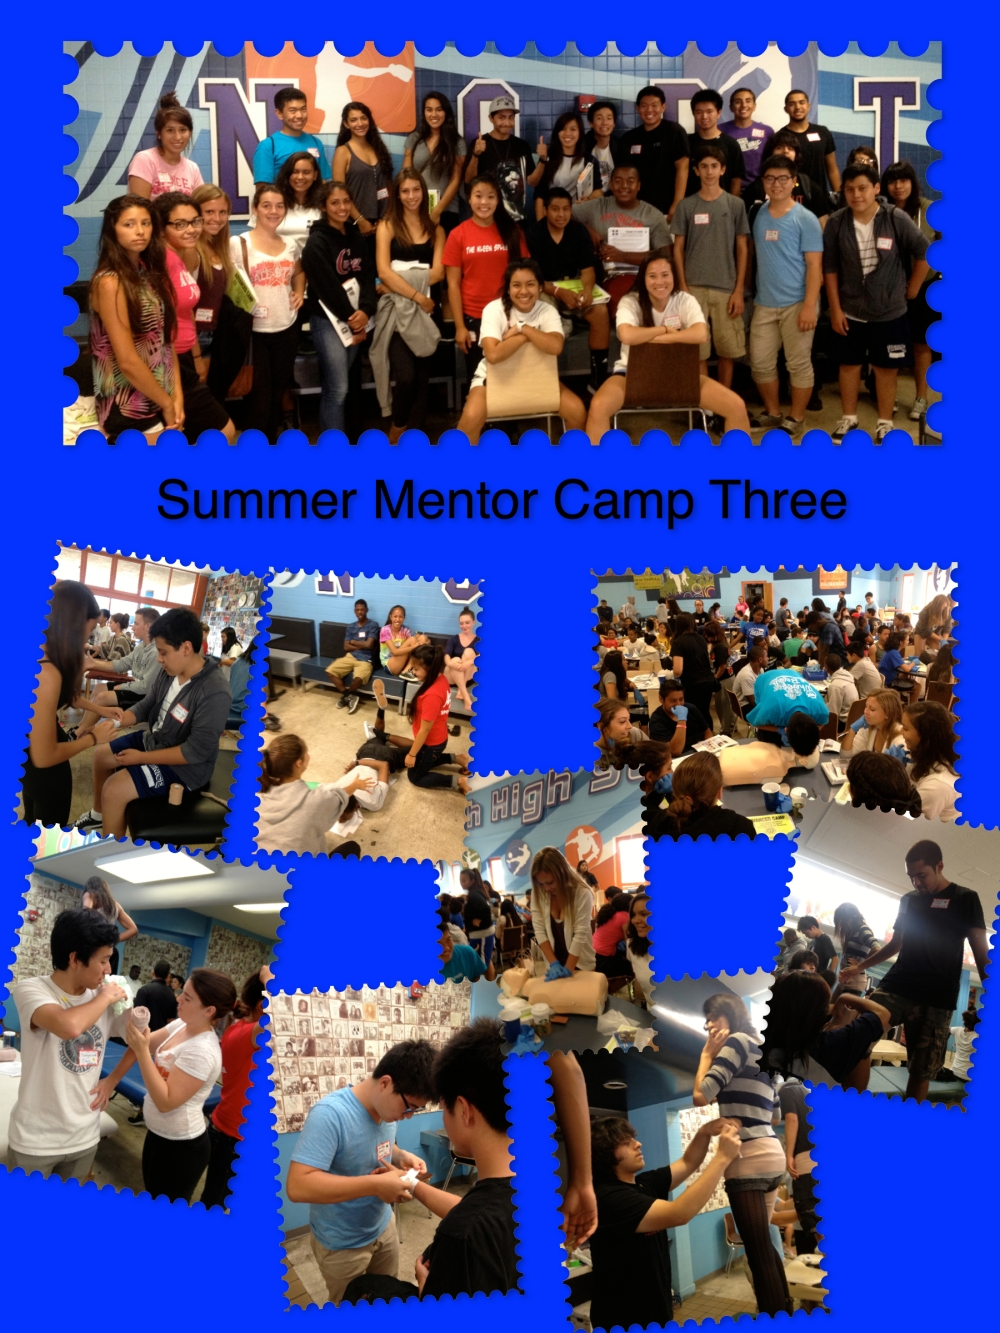 Summer Mentor Camp Three